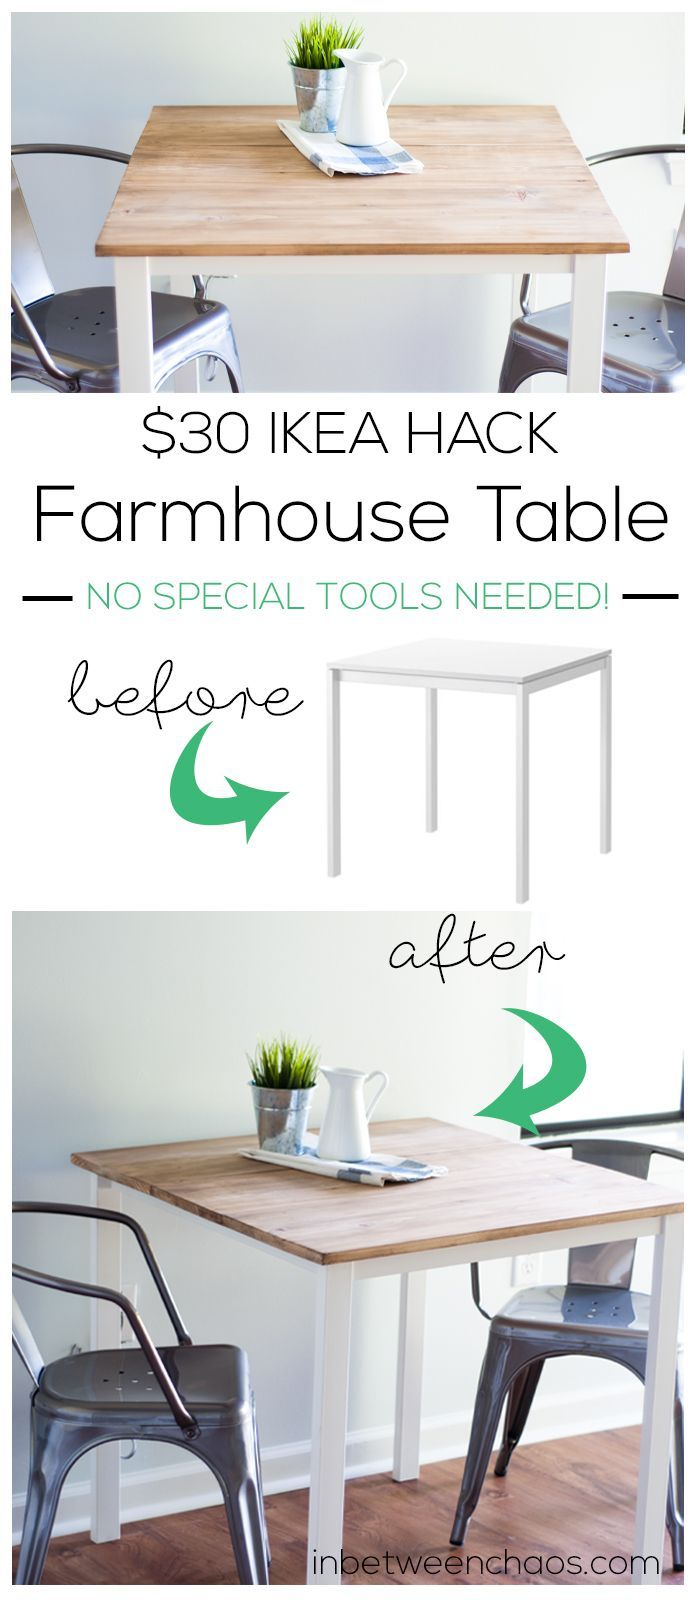 $30 IKEA Farmhouse Table Hack | http://inbetweenchaos.com